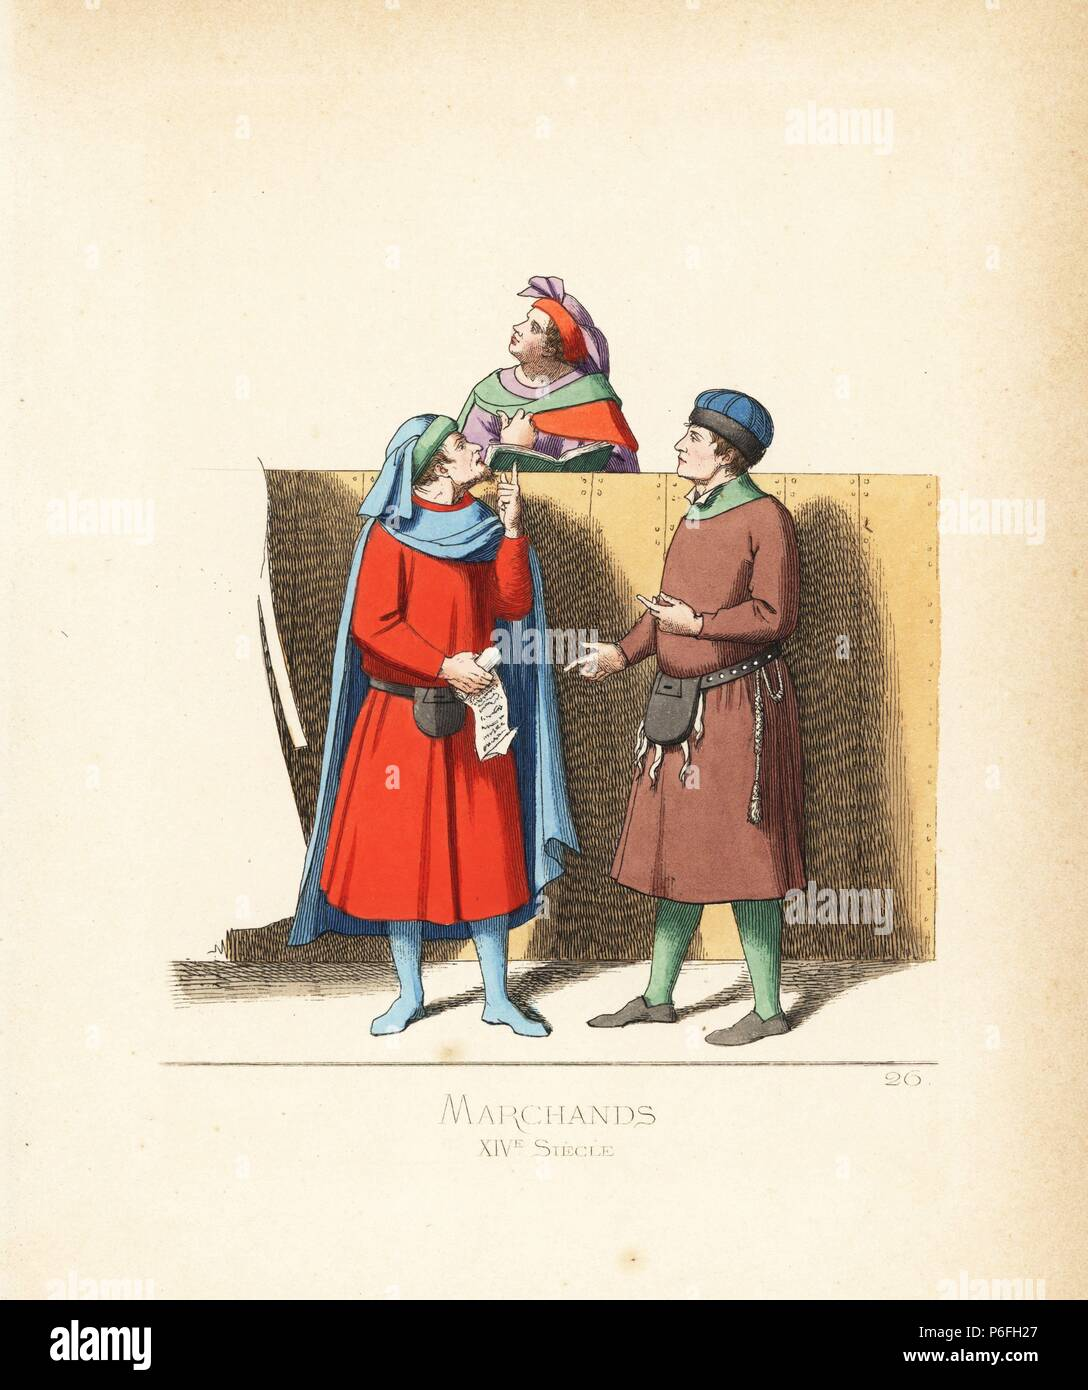 Italian merchants and a judicial notary, 14th century. The notary wears a violet and scarlet bonnet and cape. The left merchant wears a blue cape and hood, scarlet tunic with belt and purse. The right merchant in blue hat with black fur, brown tunic, leather belt and purse. From a manuscript in Siena Library. Handcoloured illustration drawn and lithographed by Paul Mercuri with text by Camille Bonnard from 'Historical Costumes from the 12th to 15th Centuries,' Levy Fils, Paris, 1860. - Stock Image